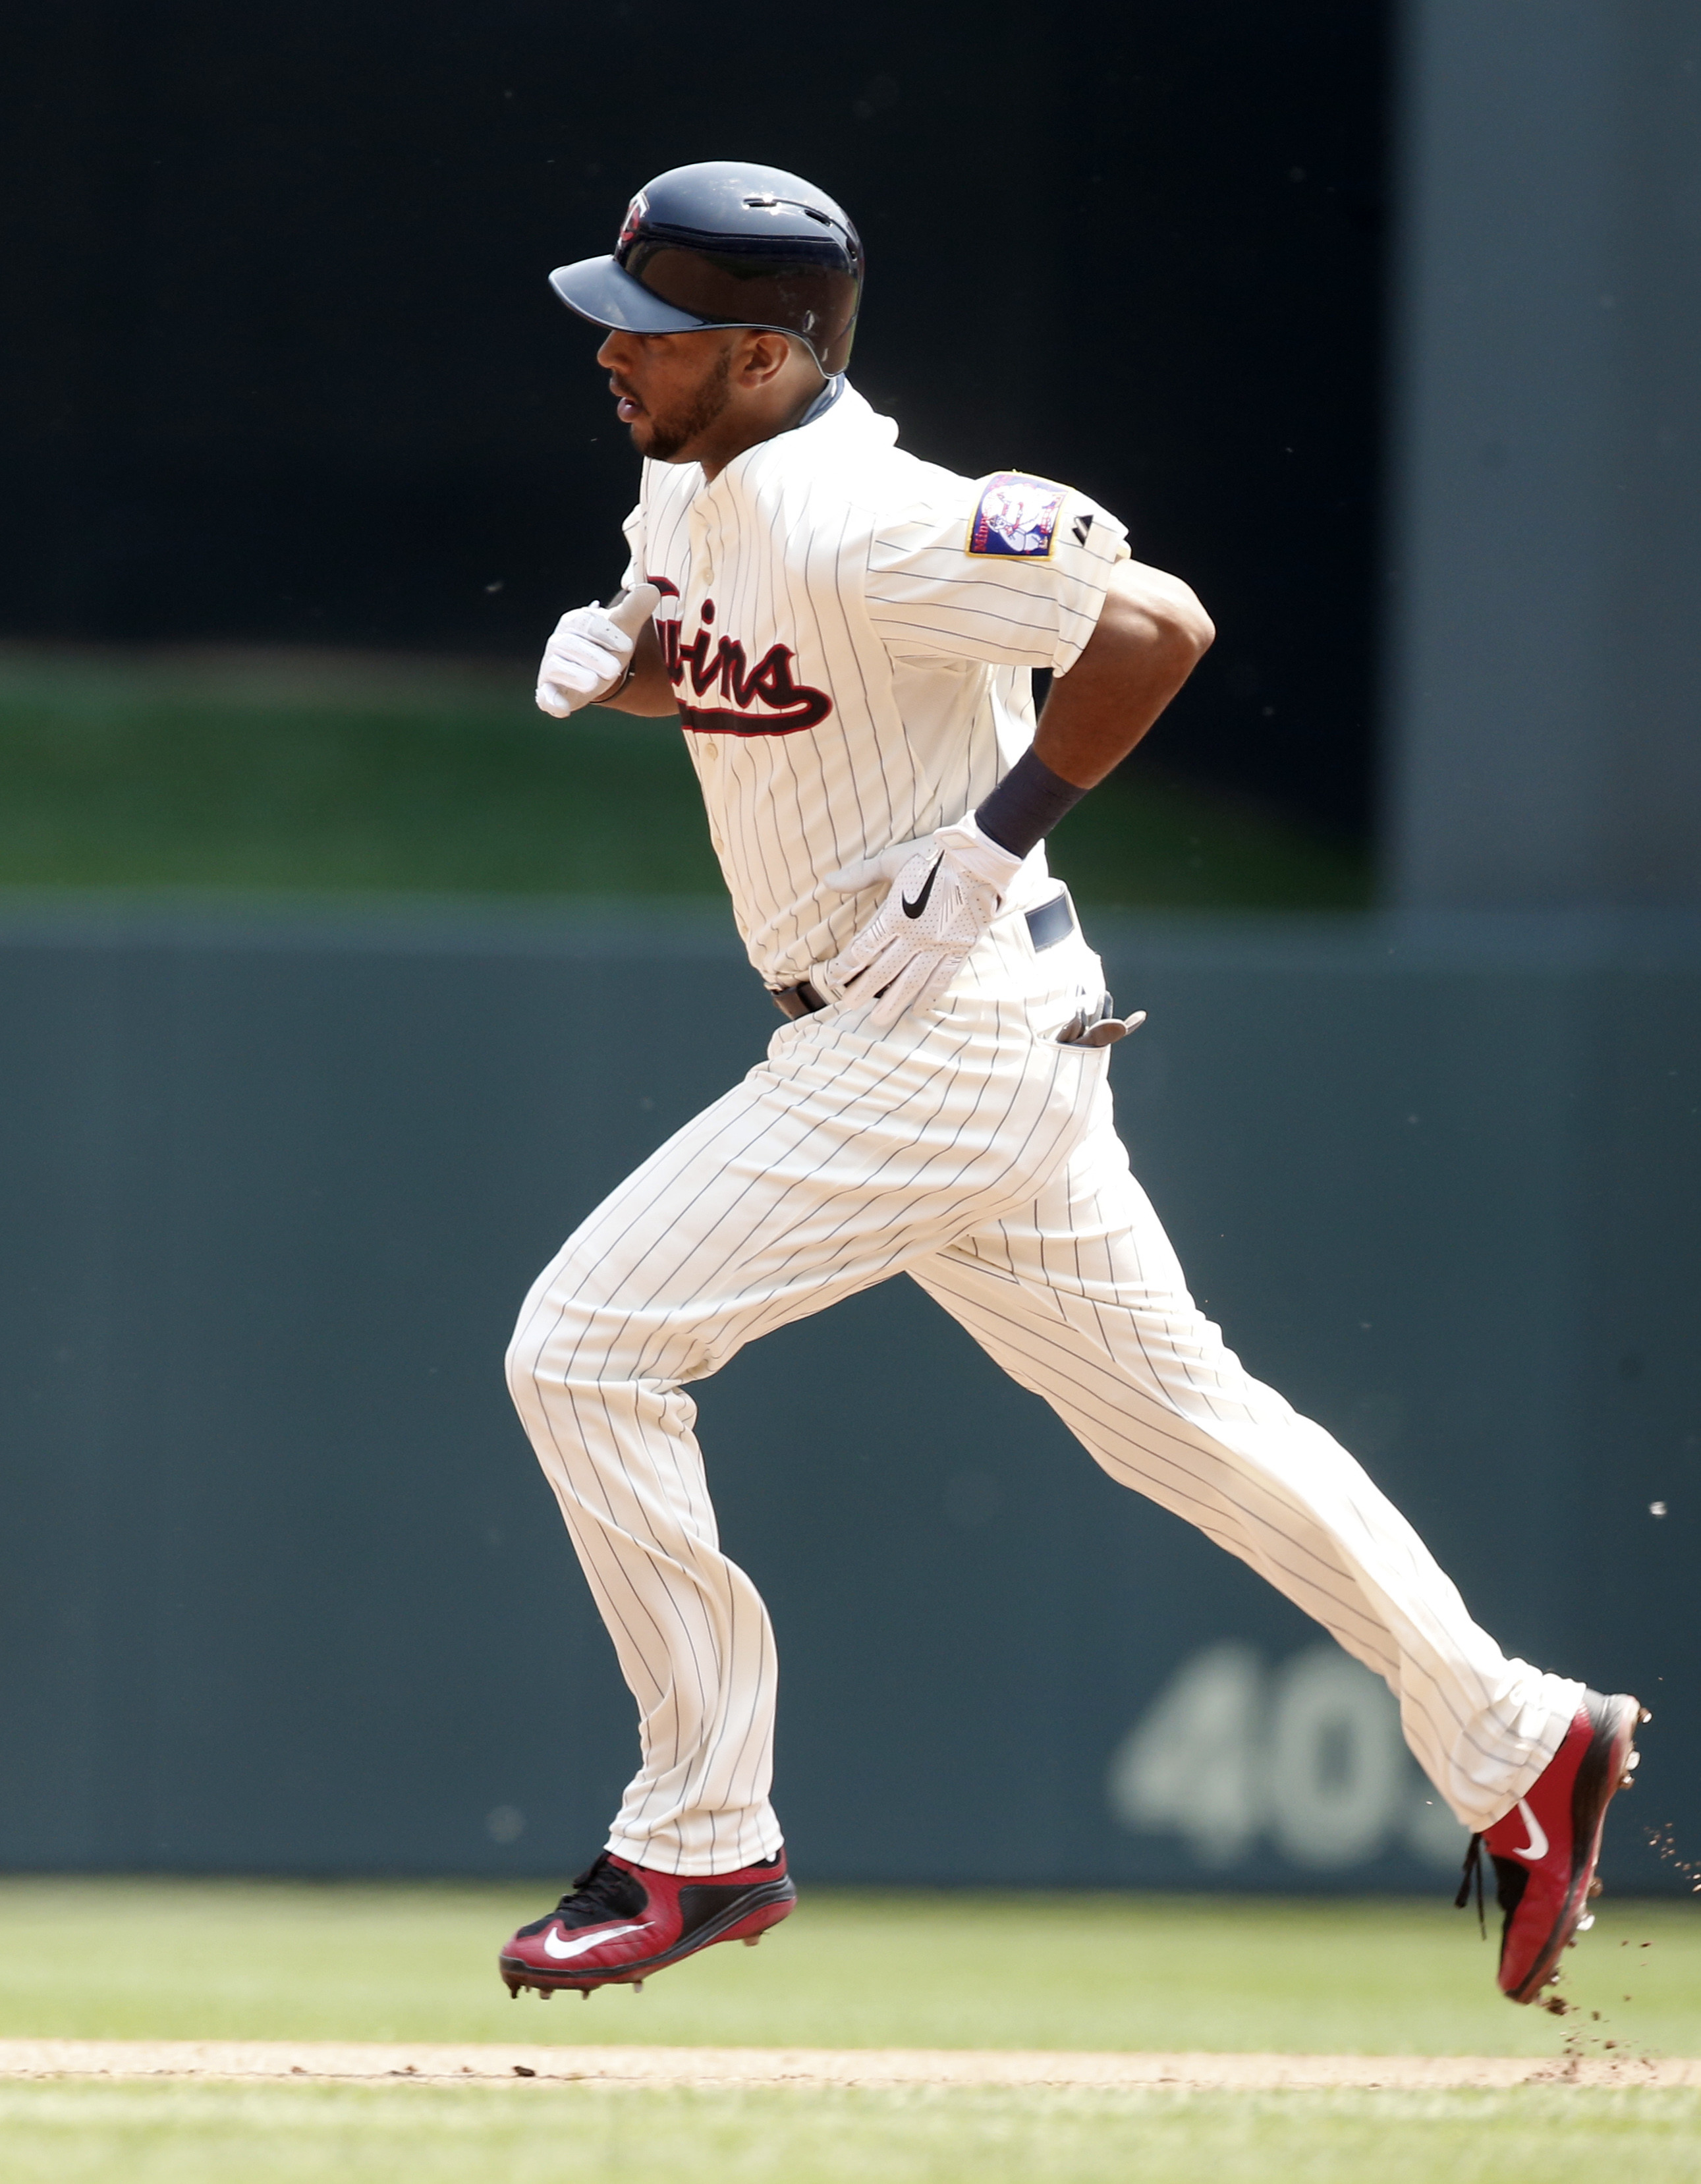 Minnesota Twins' Aaron Hicks rounds the bases with a two-run home run off Boston Red Sox' pitcher Rick Porcello in the fourth inning of a baseball game, Wednesday May 27, 2015, in Minneapolis. (AP Photo/Jim Mone)